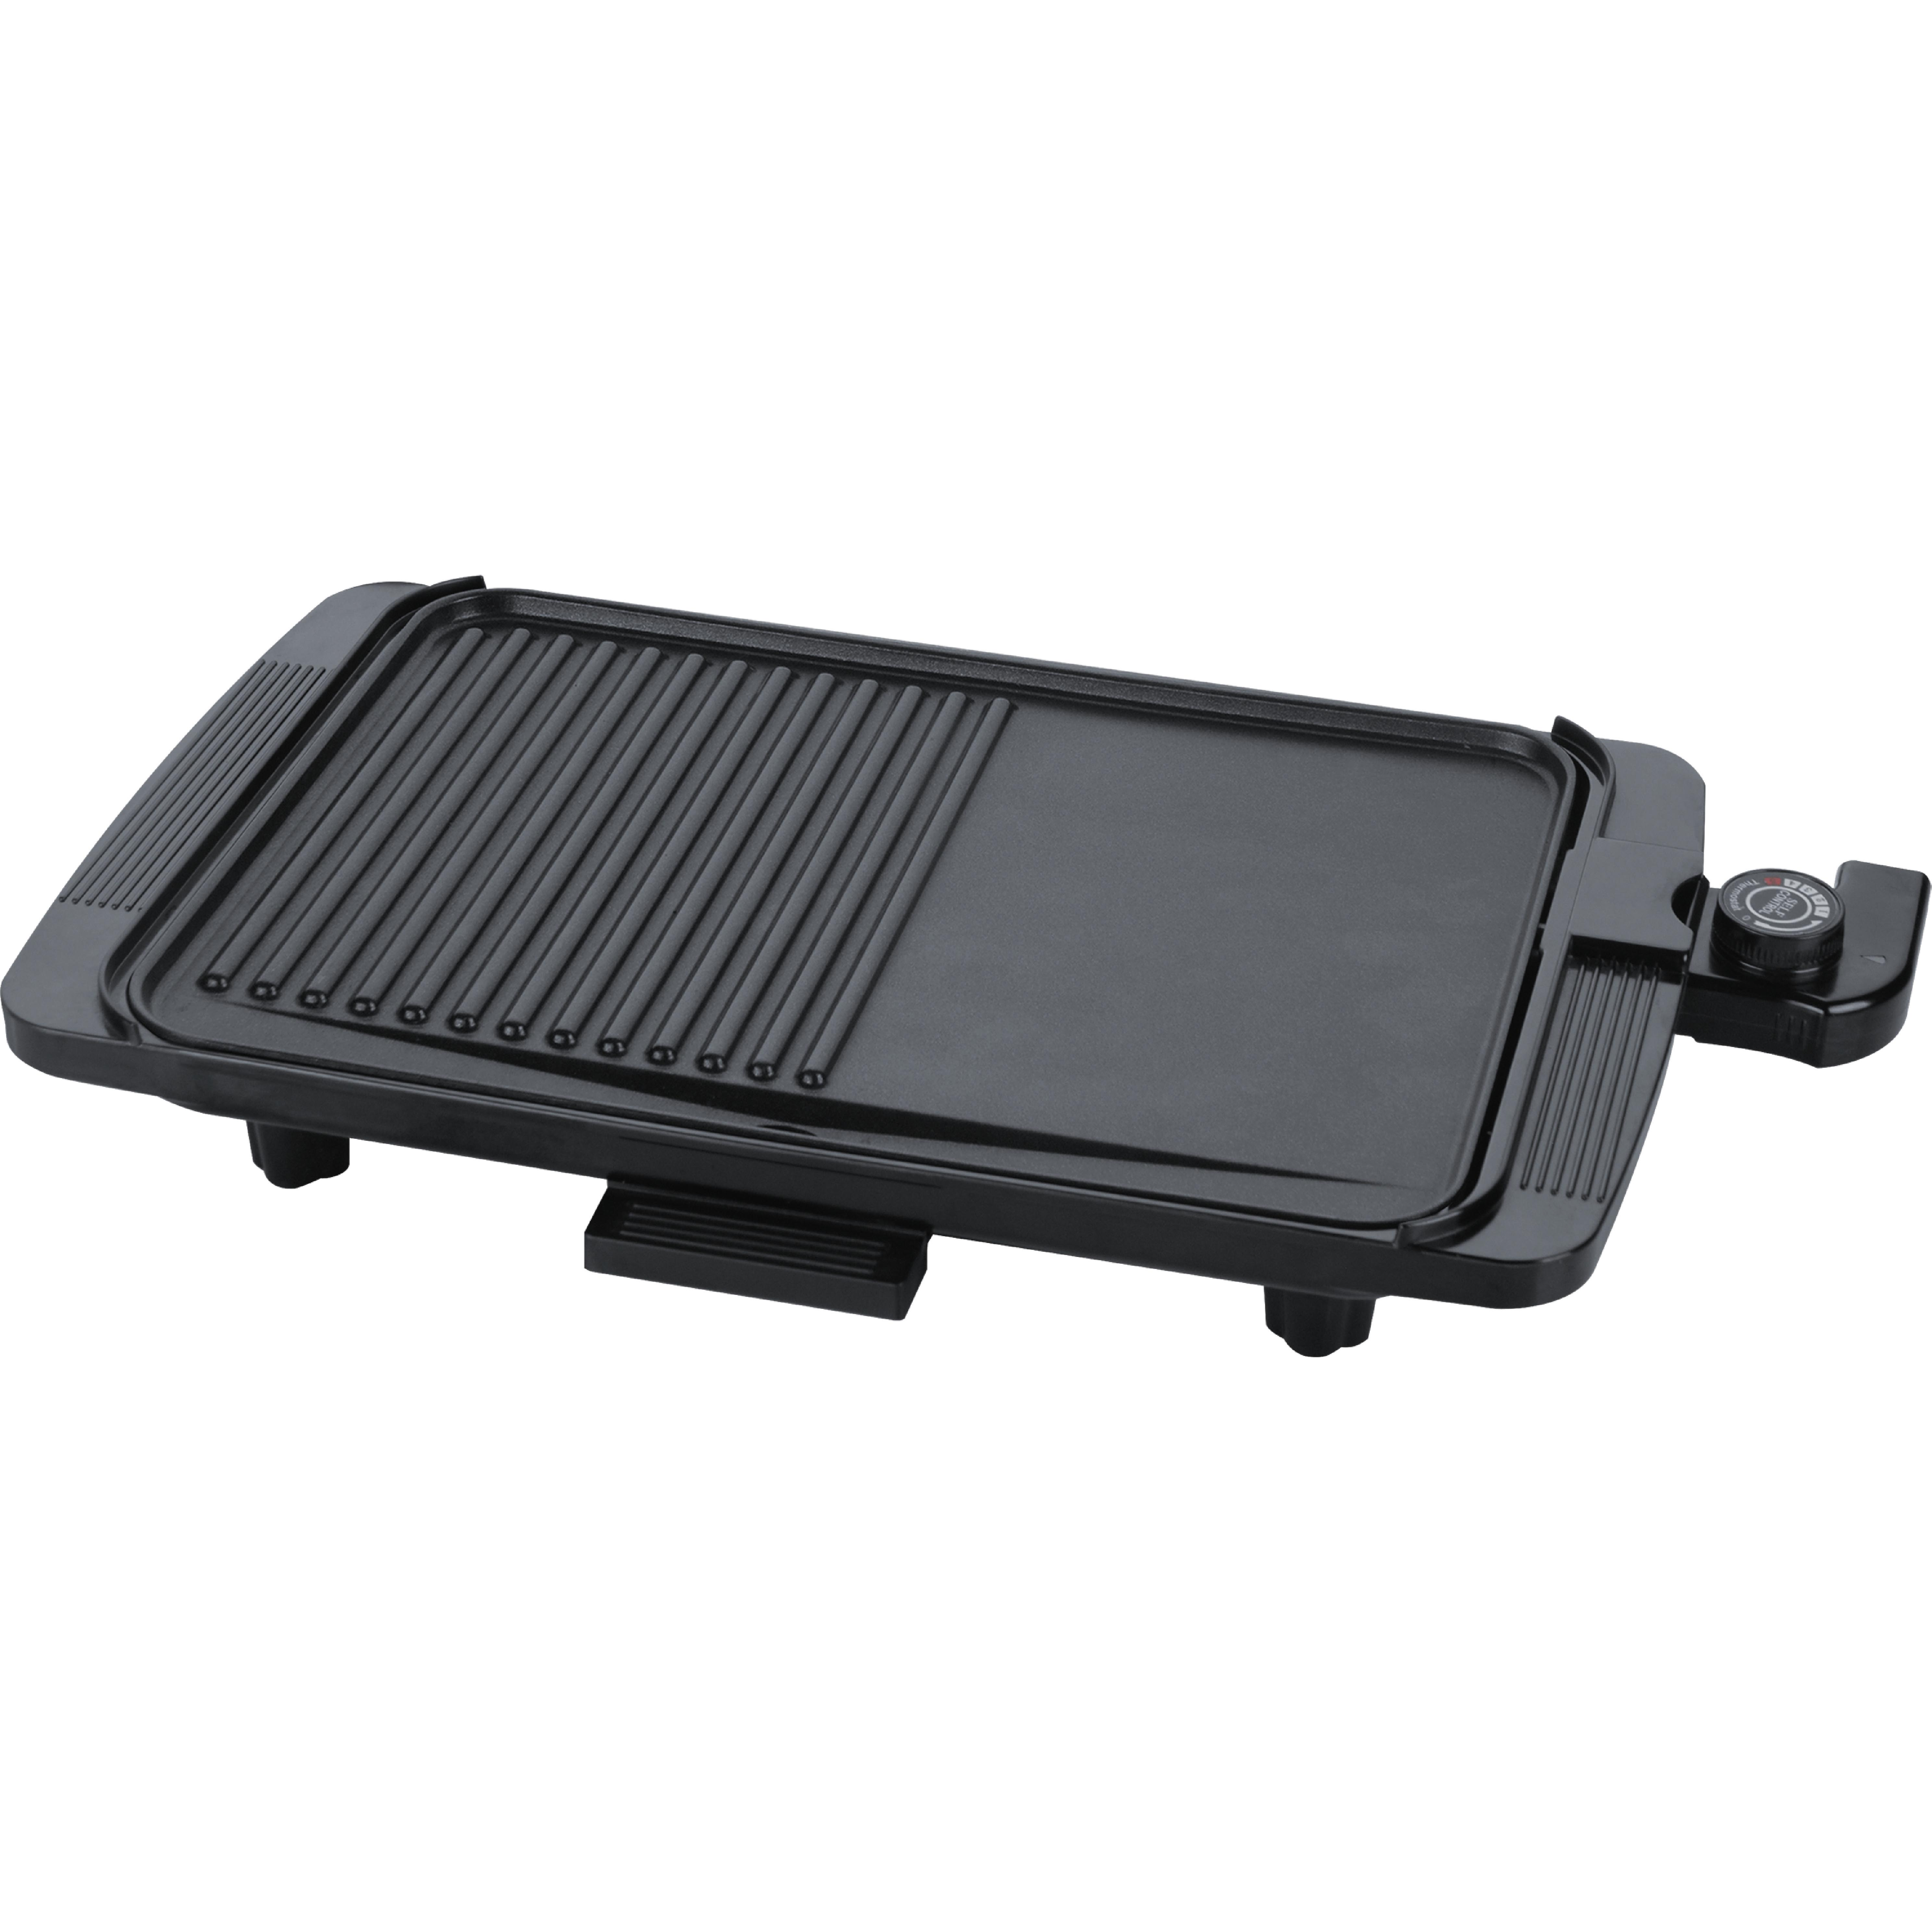 CG-202 Electric Grill